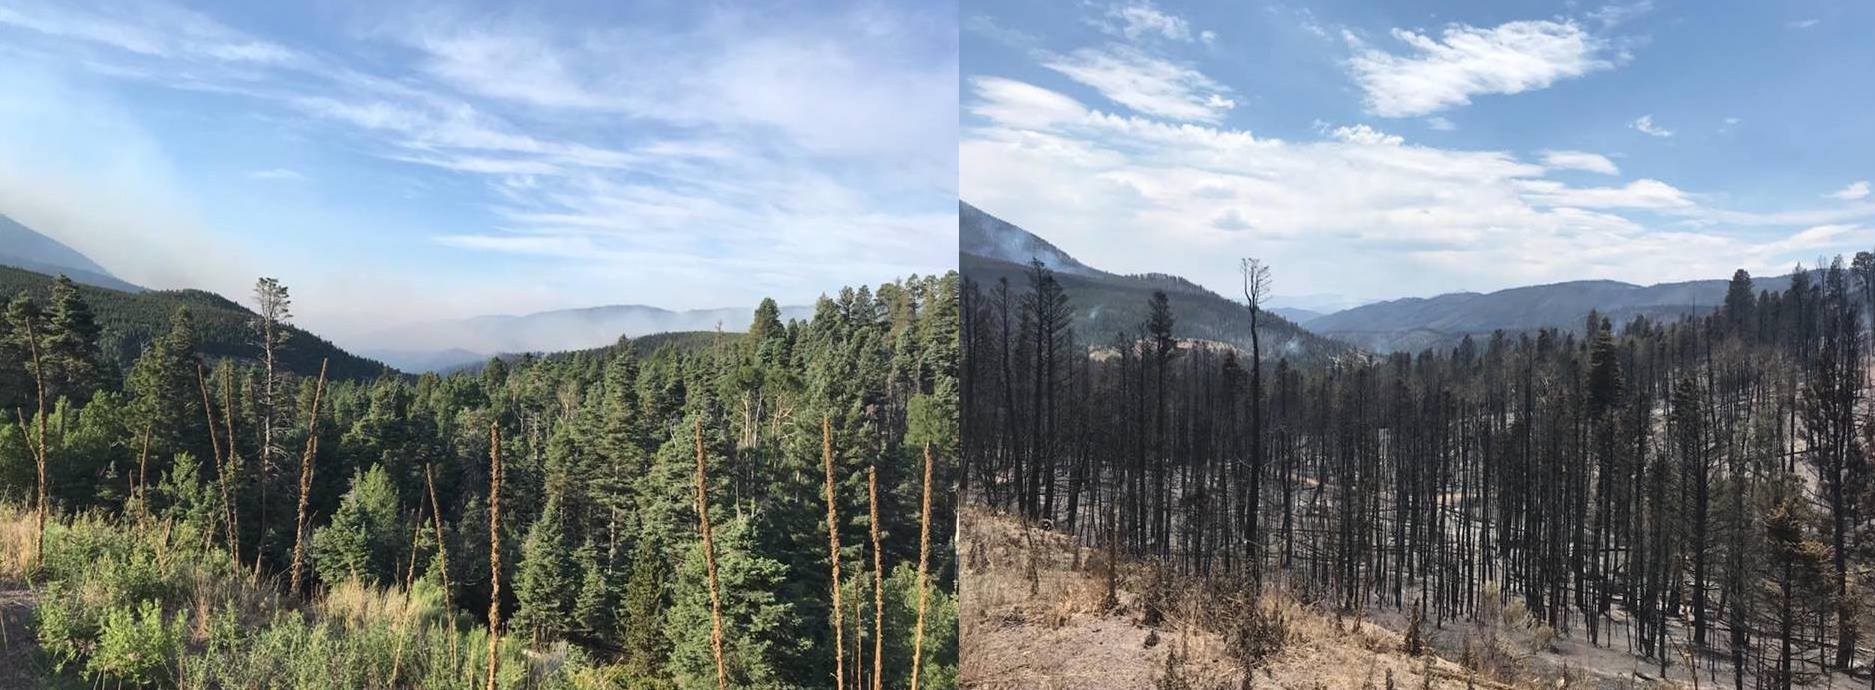 These photos show the summit of La Veta Pass looking southeast before and after the Spring Fire. Highway 160 reopened briefly before being closed again due to fire activity.